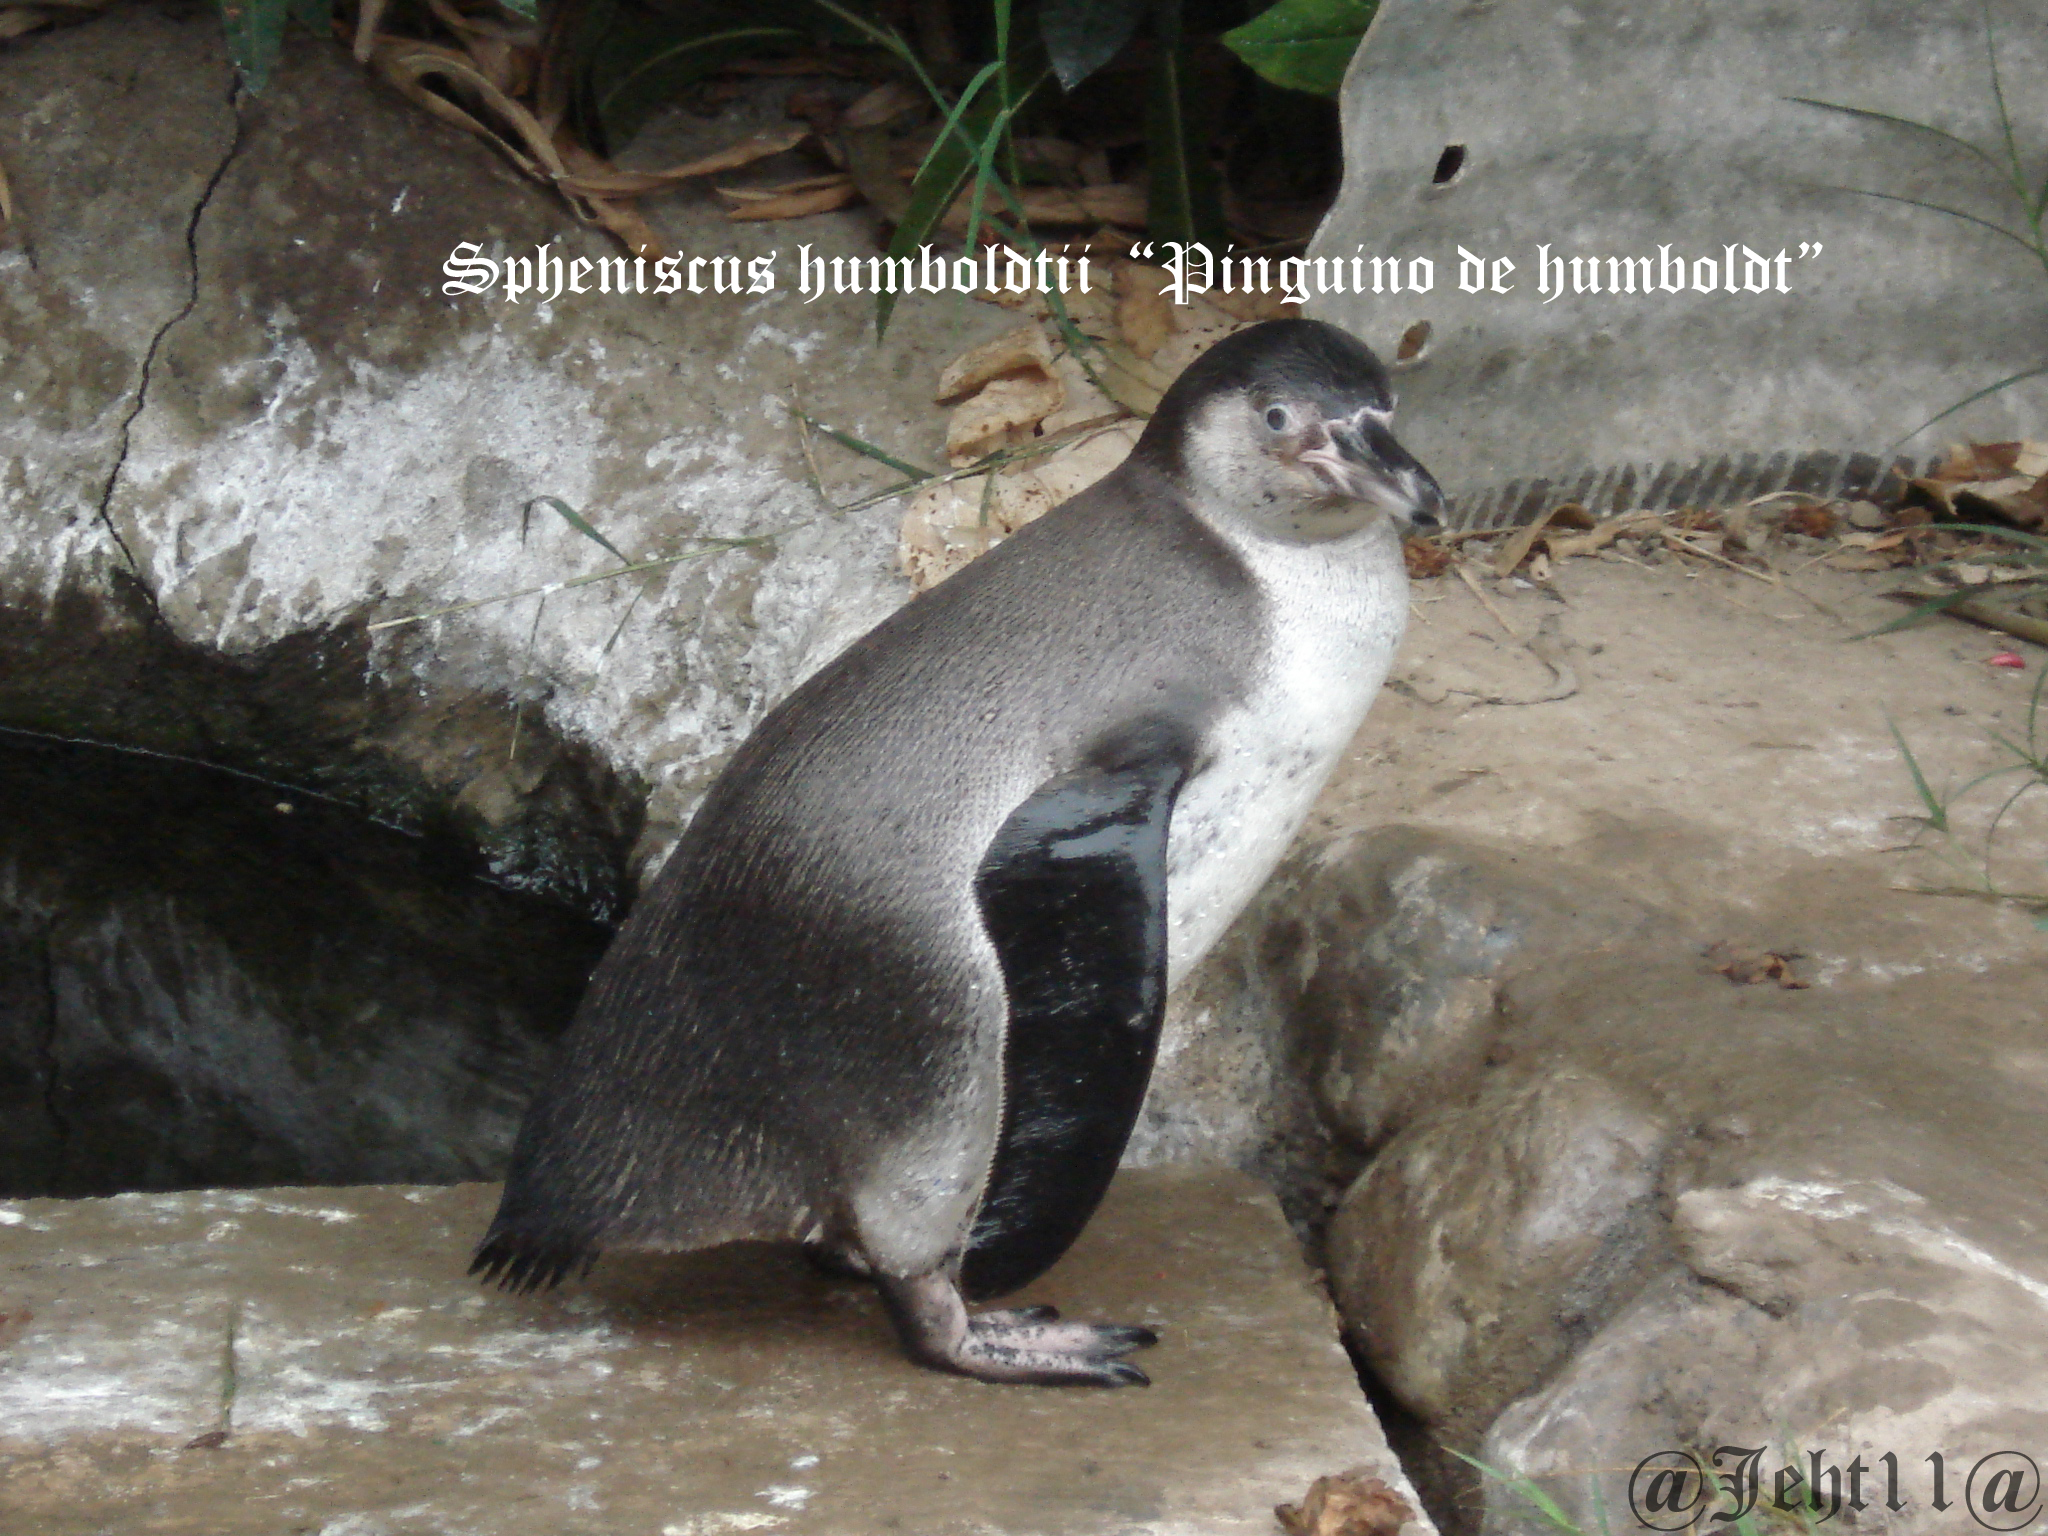 Scientific Name: Humboldt Penguin - Photo: Jose Ernesto Huaroto Tornero